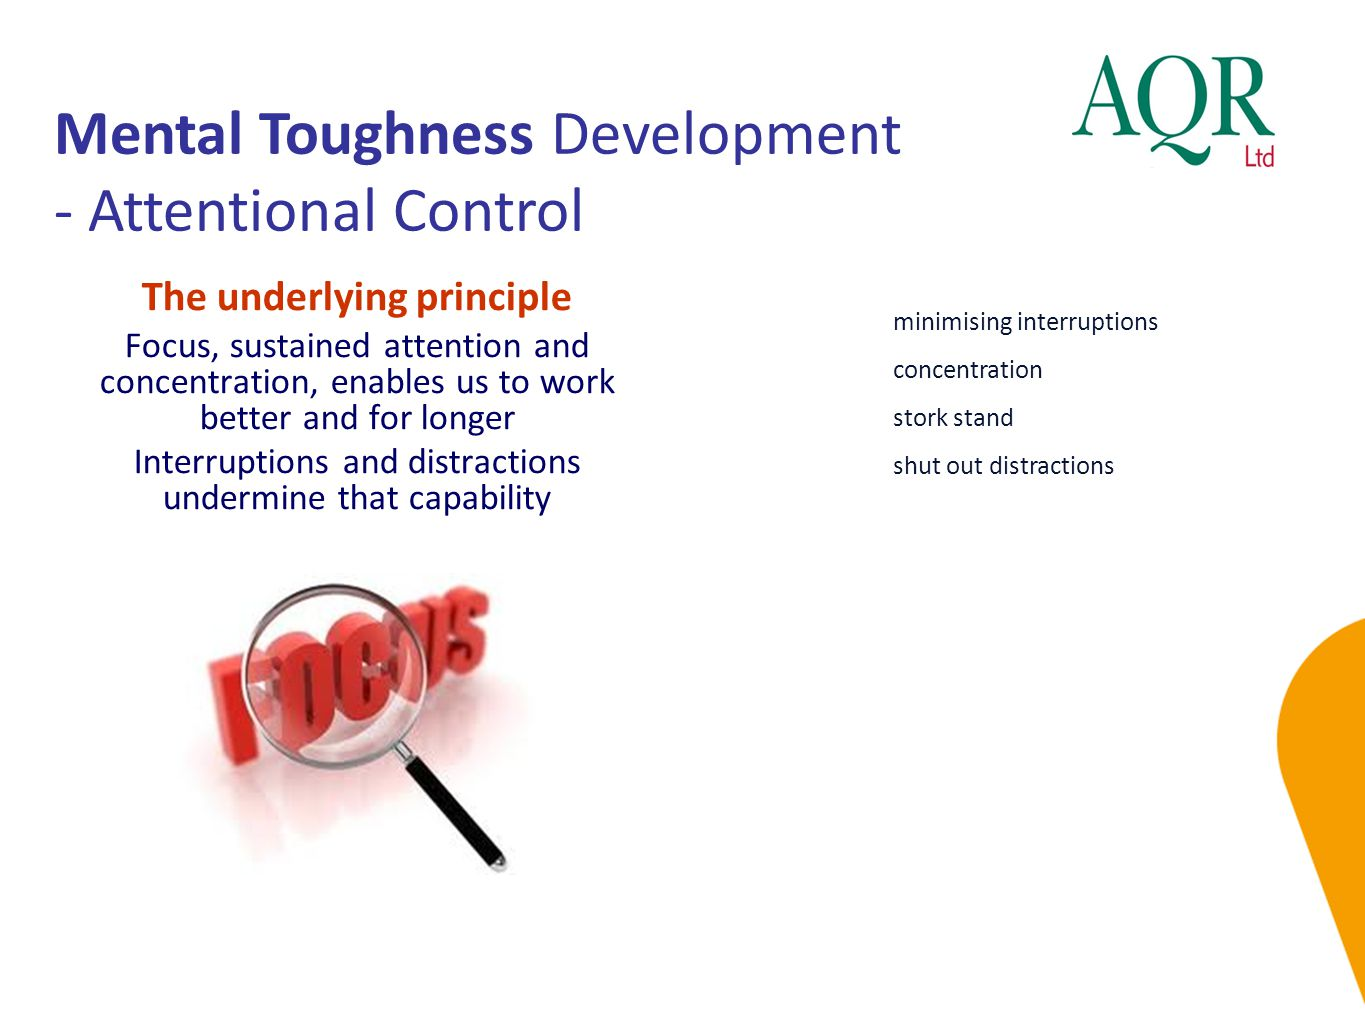 Mental Toughness Development - Attentional Control minimising interruptions concentration stork stand shut out distractions The underlying principle F